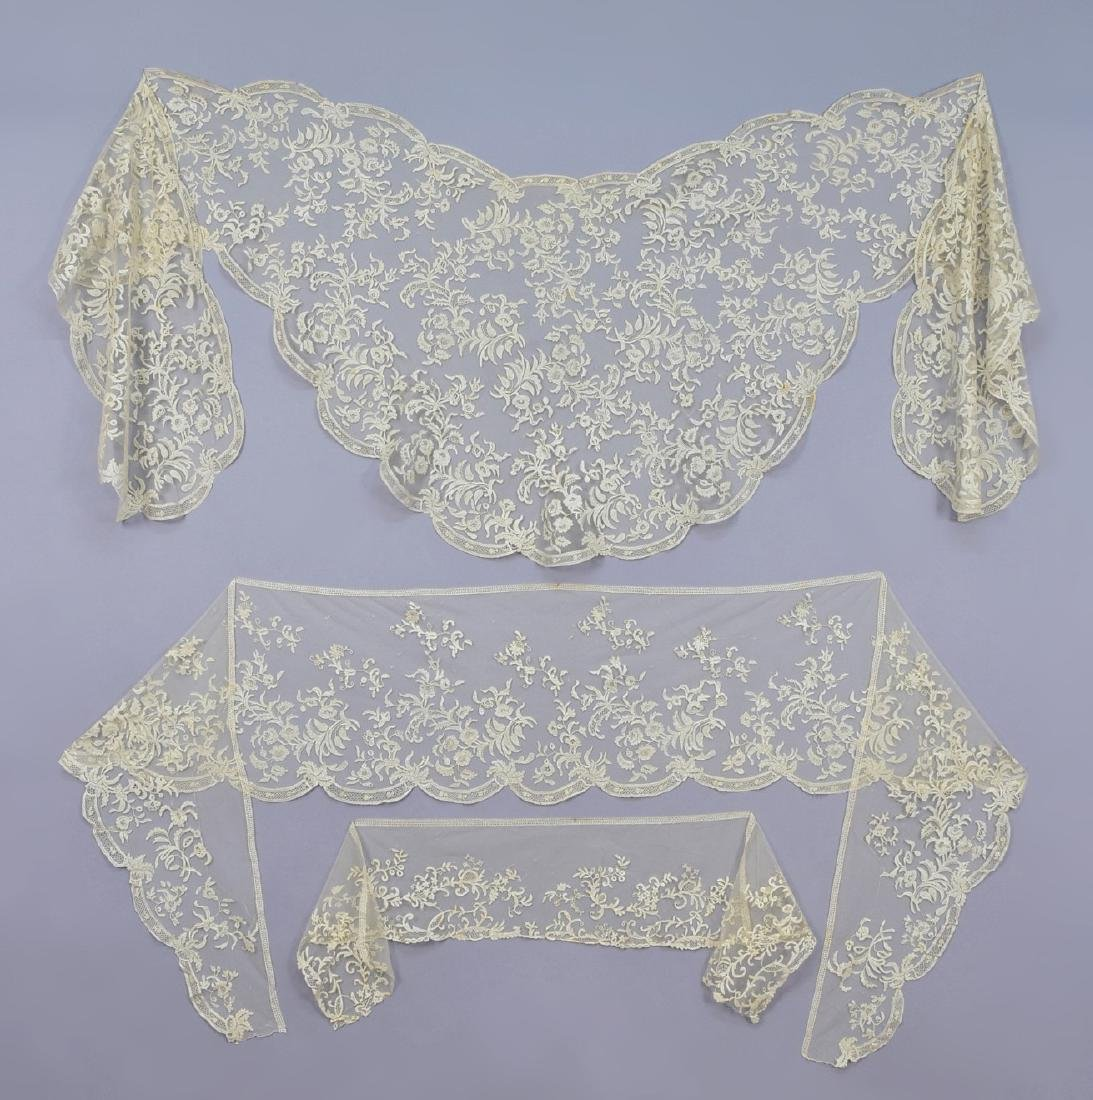 HONITON LACE TIPPET and STOLE SET,  1840s - 1850s